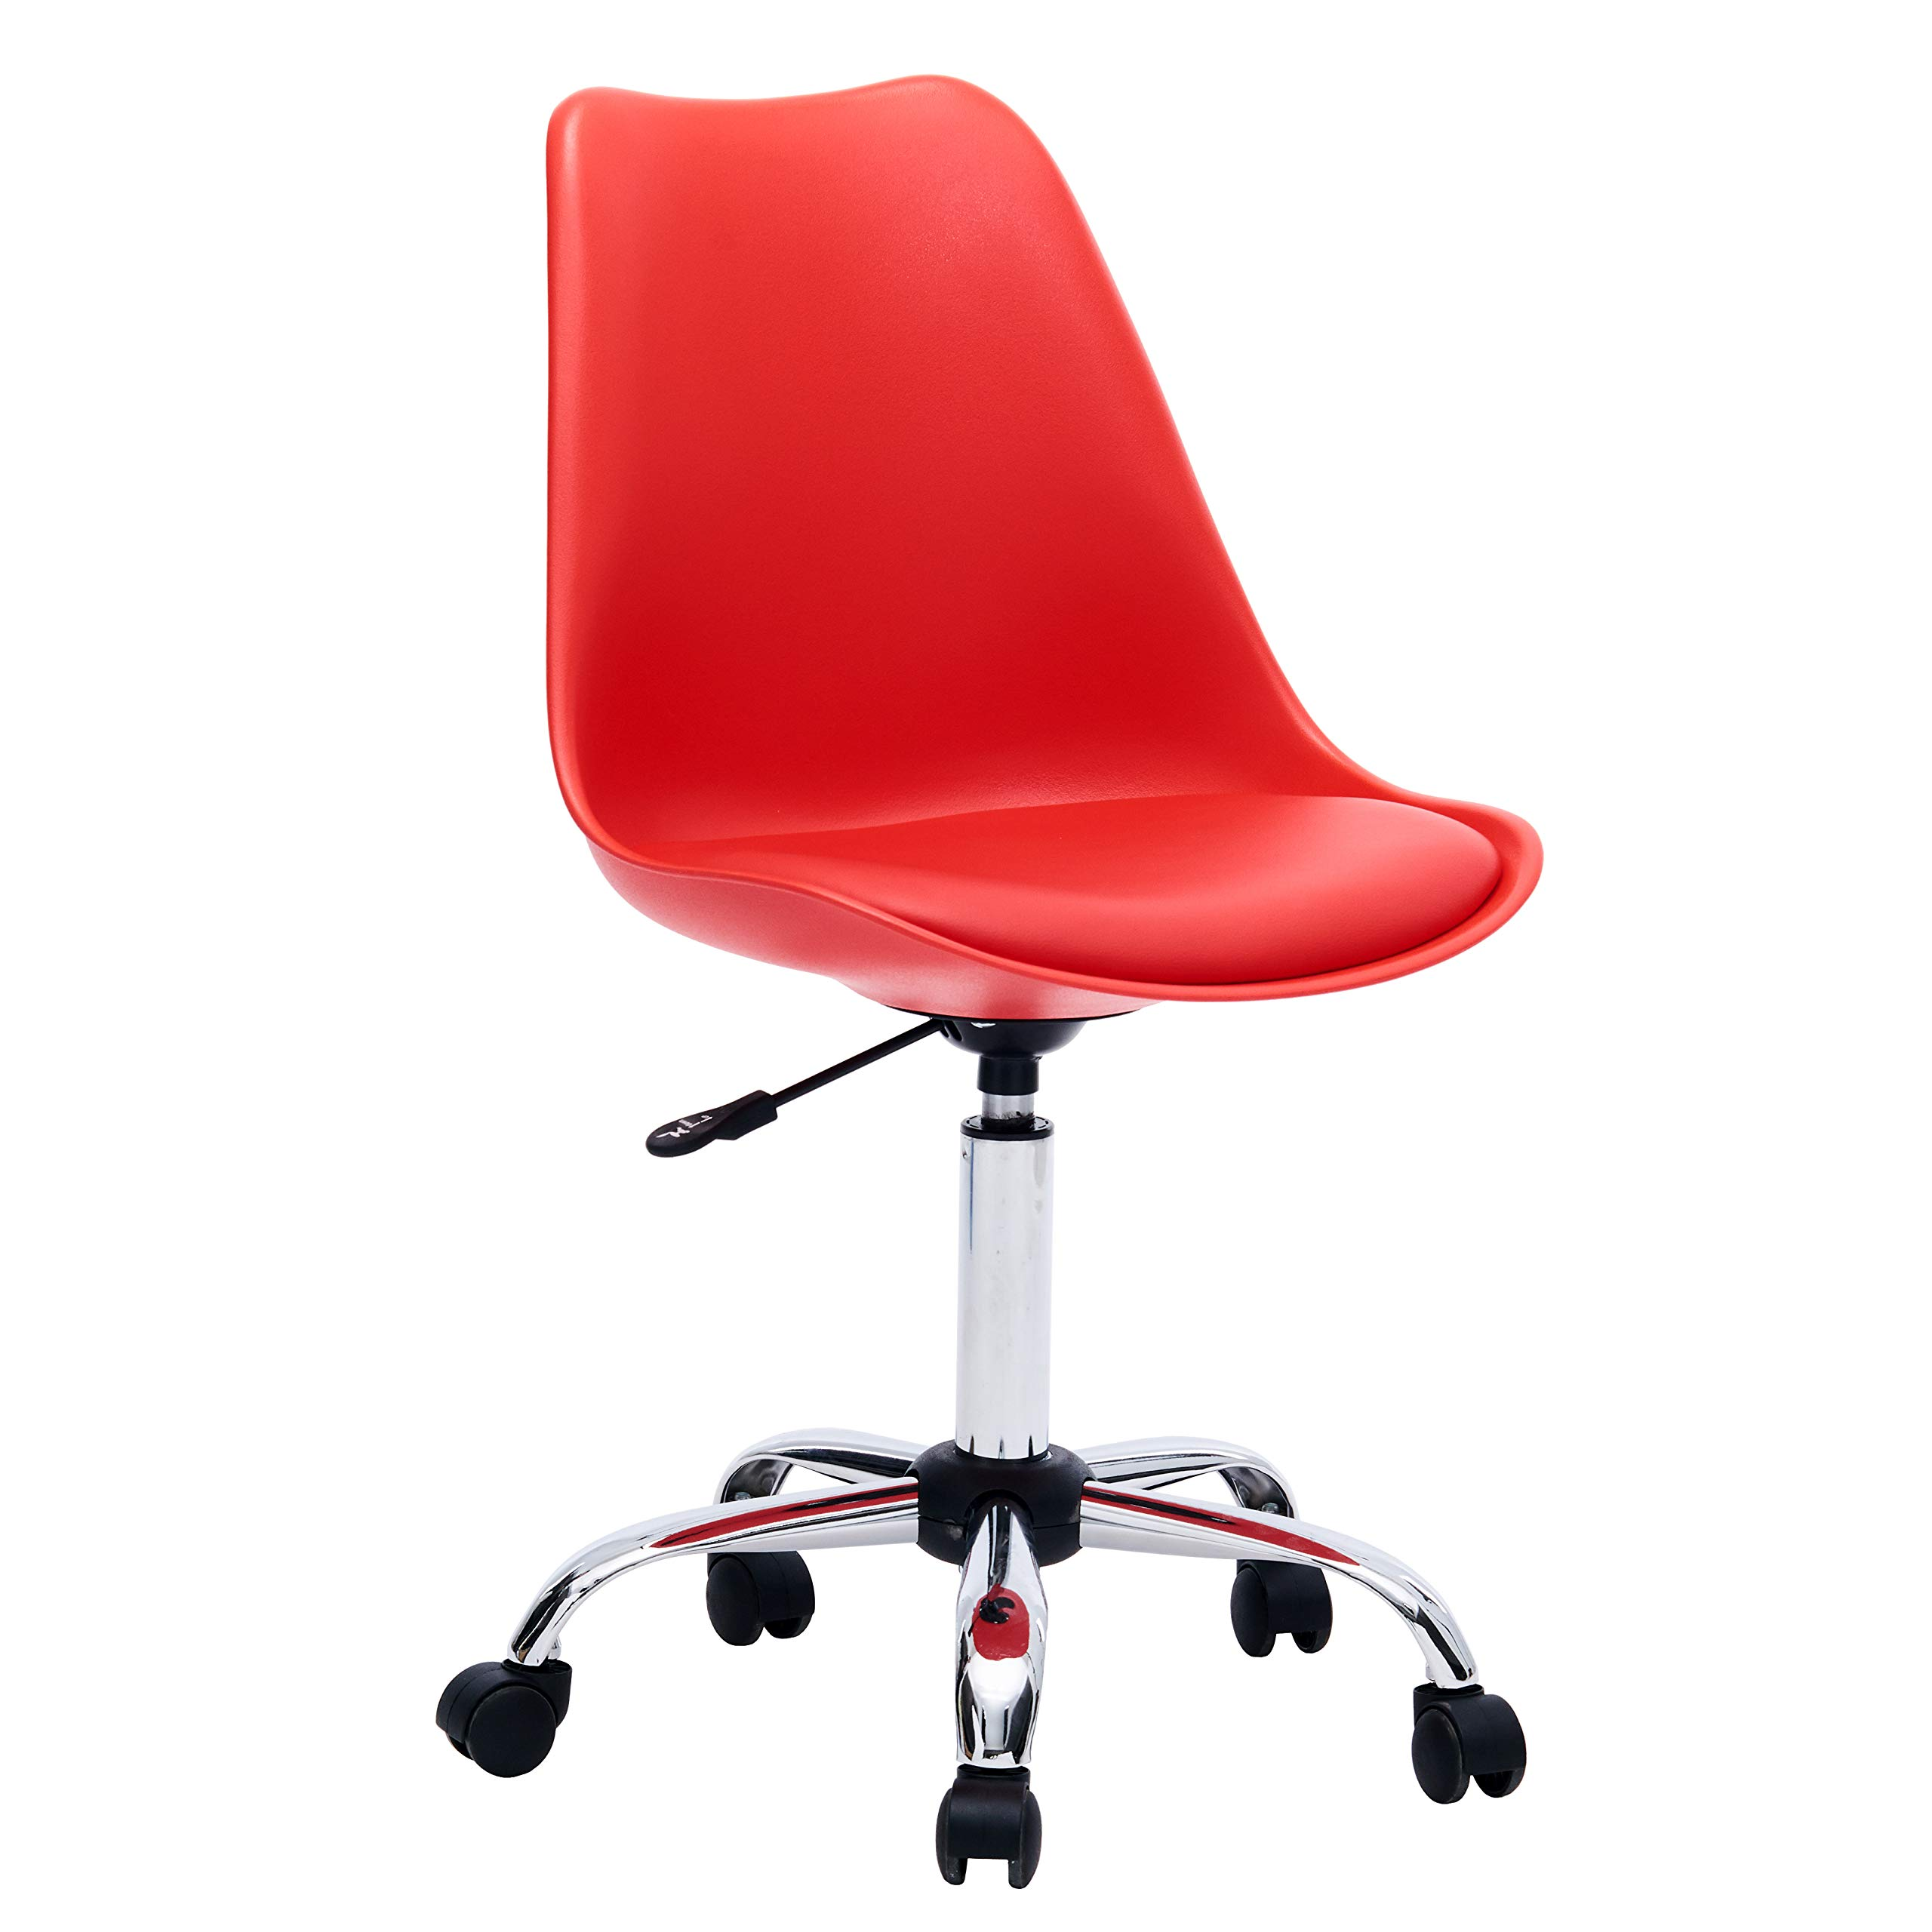 Porthos Home LVC008A RED Adjustable Height Cushioned Seat Office Desk Chair with Chrome Base and Caster Wheels, Easy Assembly, One Size